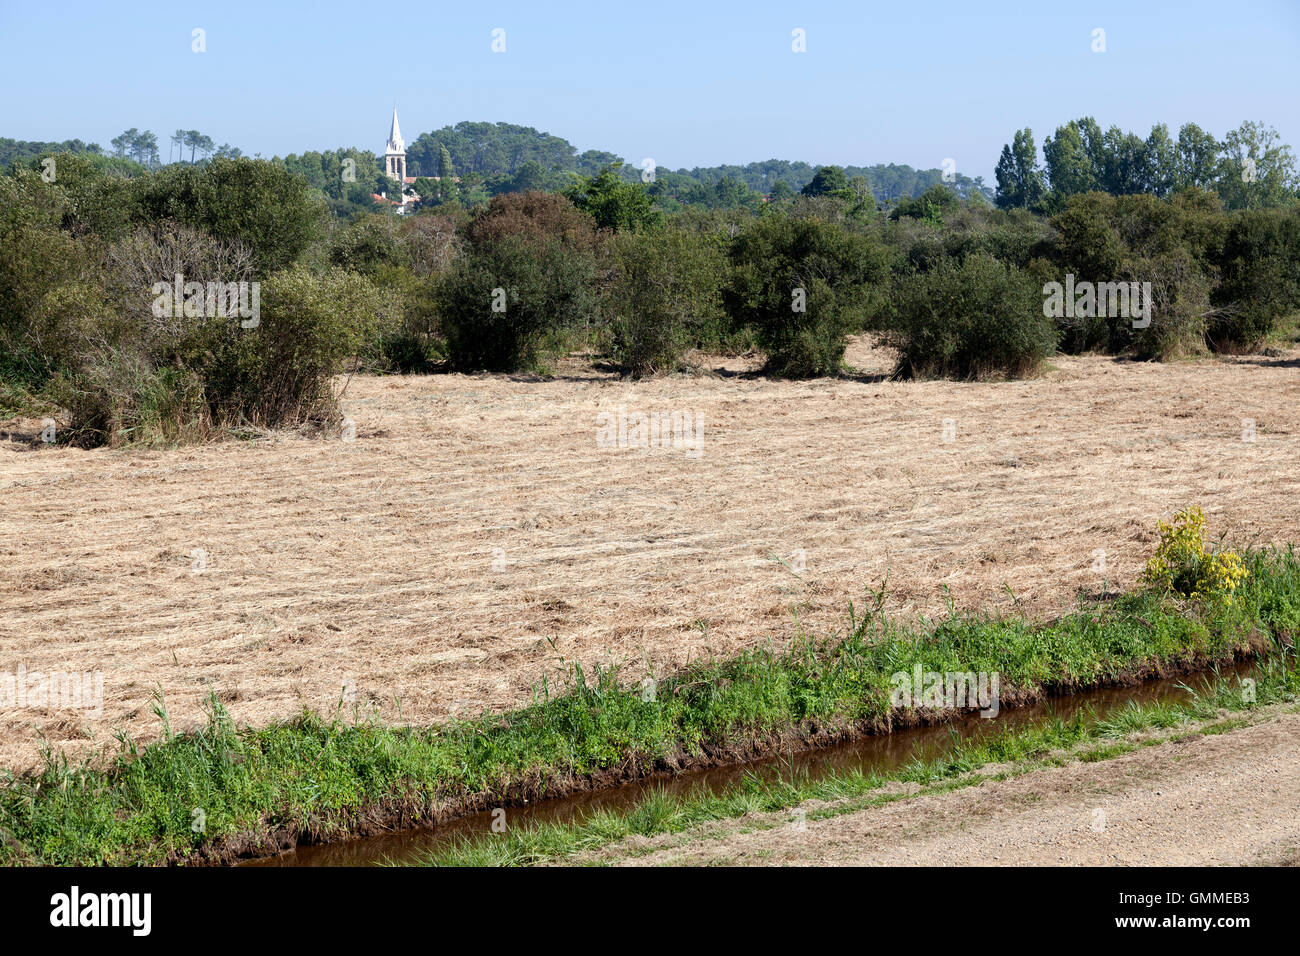 A large view of a part of the 'Barthes' of Monbardon (Soorts Hossegor - Landes - France) with a drain to - Stock Image